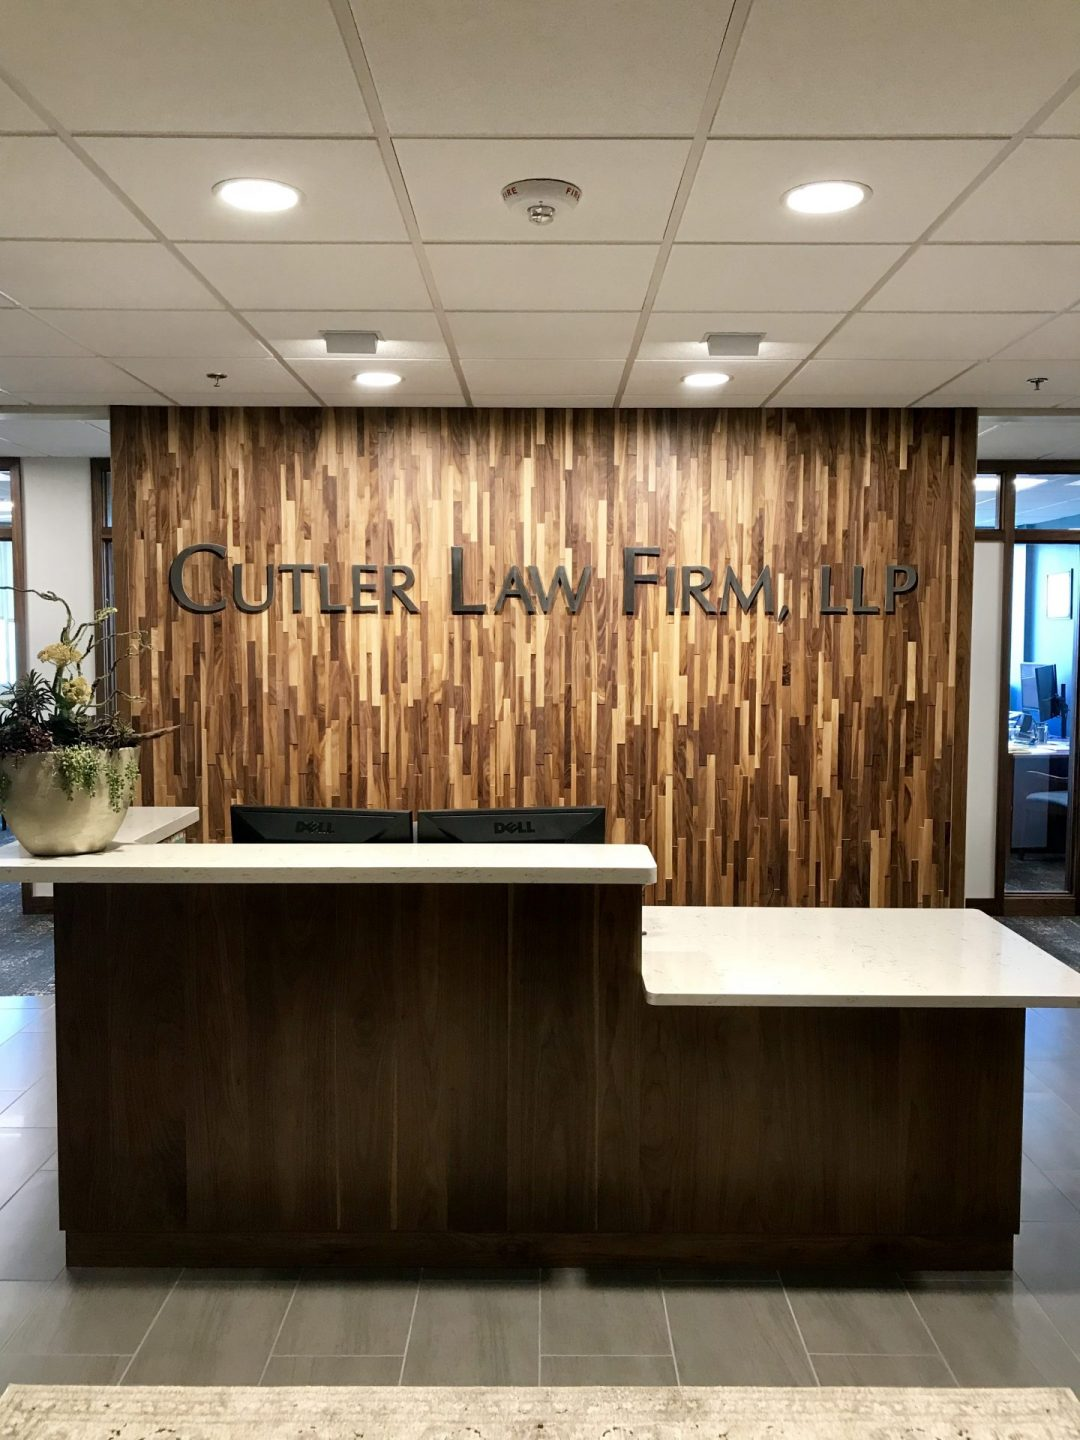 Cutler Law Firm – Sioux Falls, SD